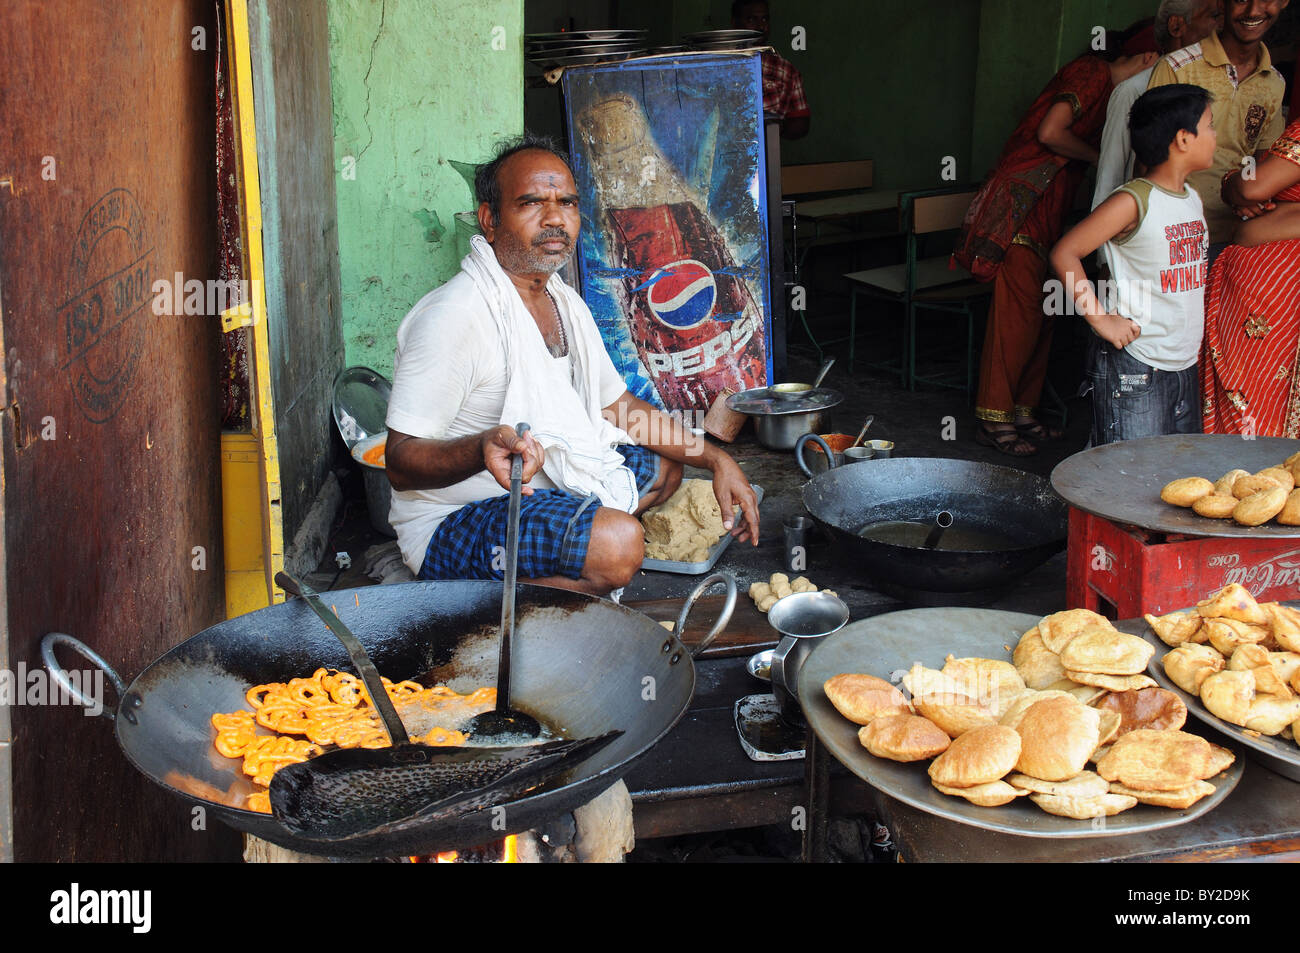 food-for-sale-on-the-streets-of-india-BY2D9K.jpg